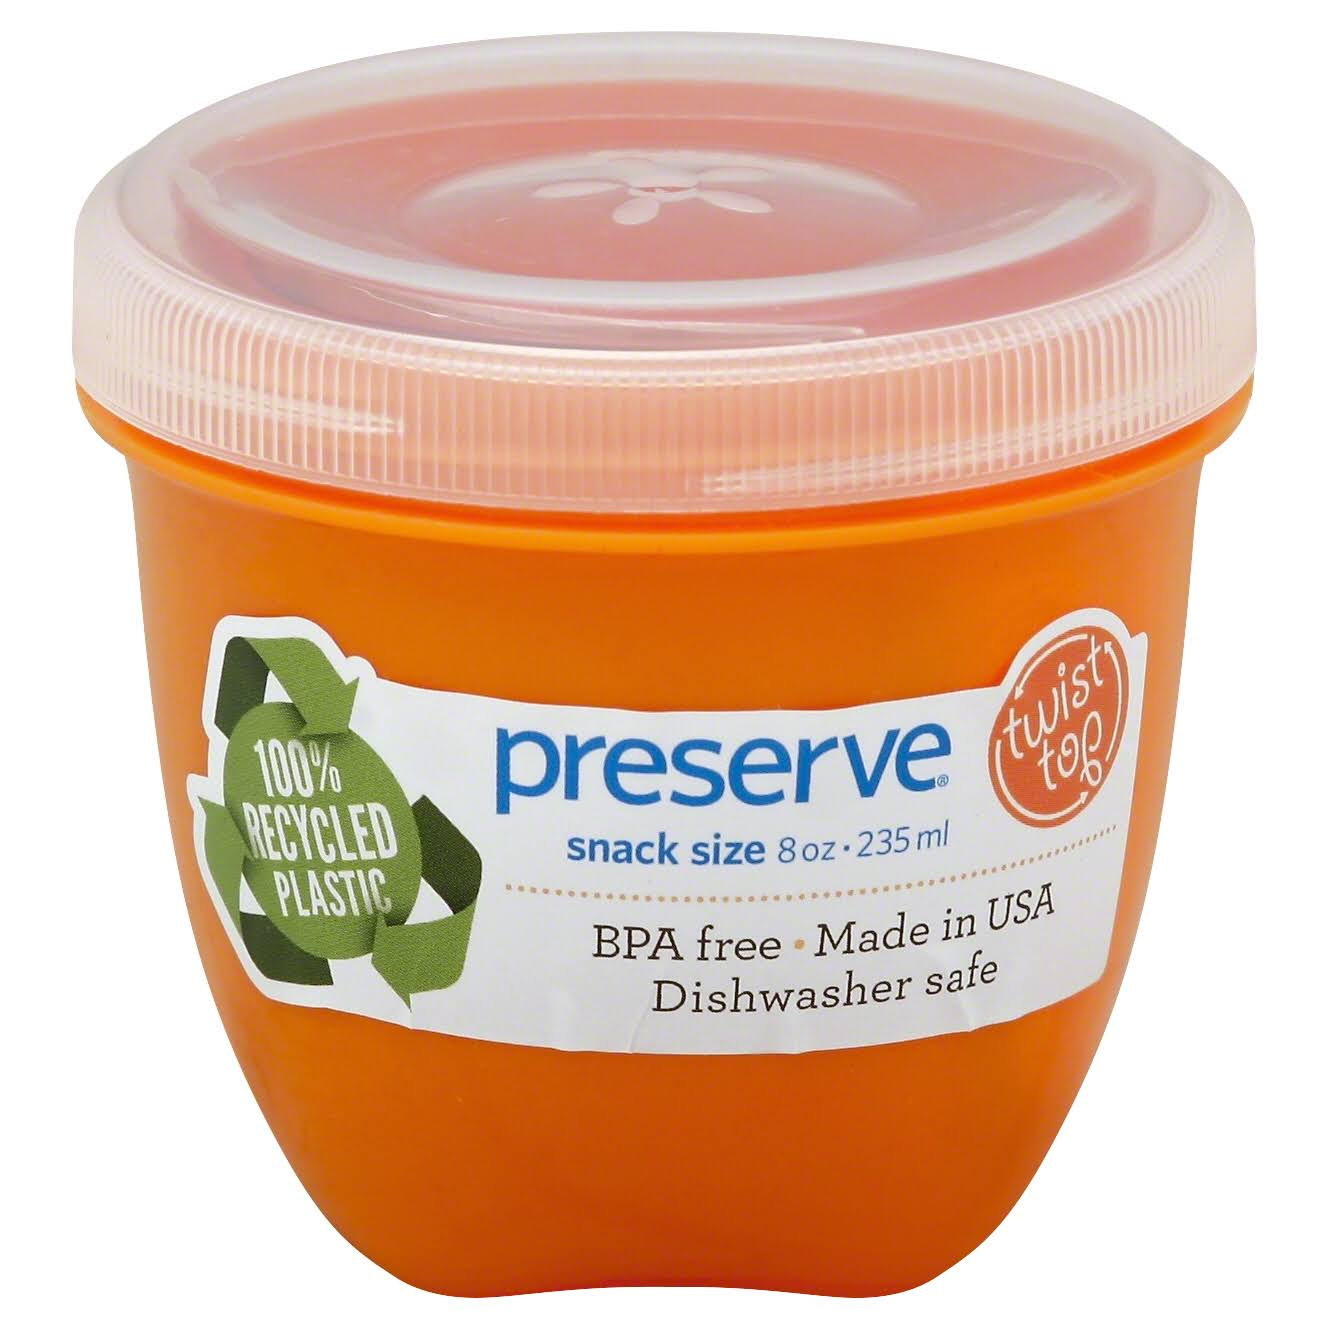 Preserve Mini Food Storage Containers - Orange, 8oz